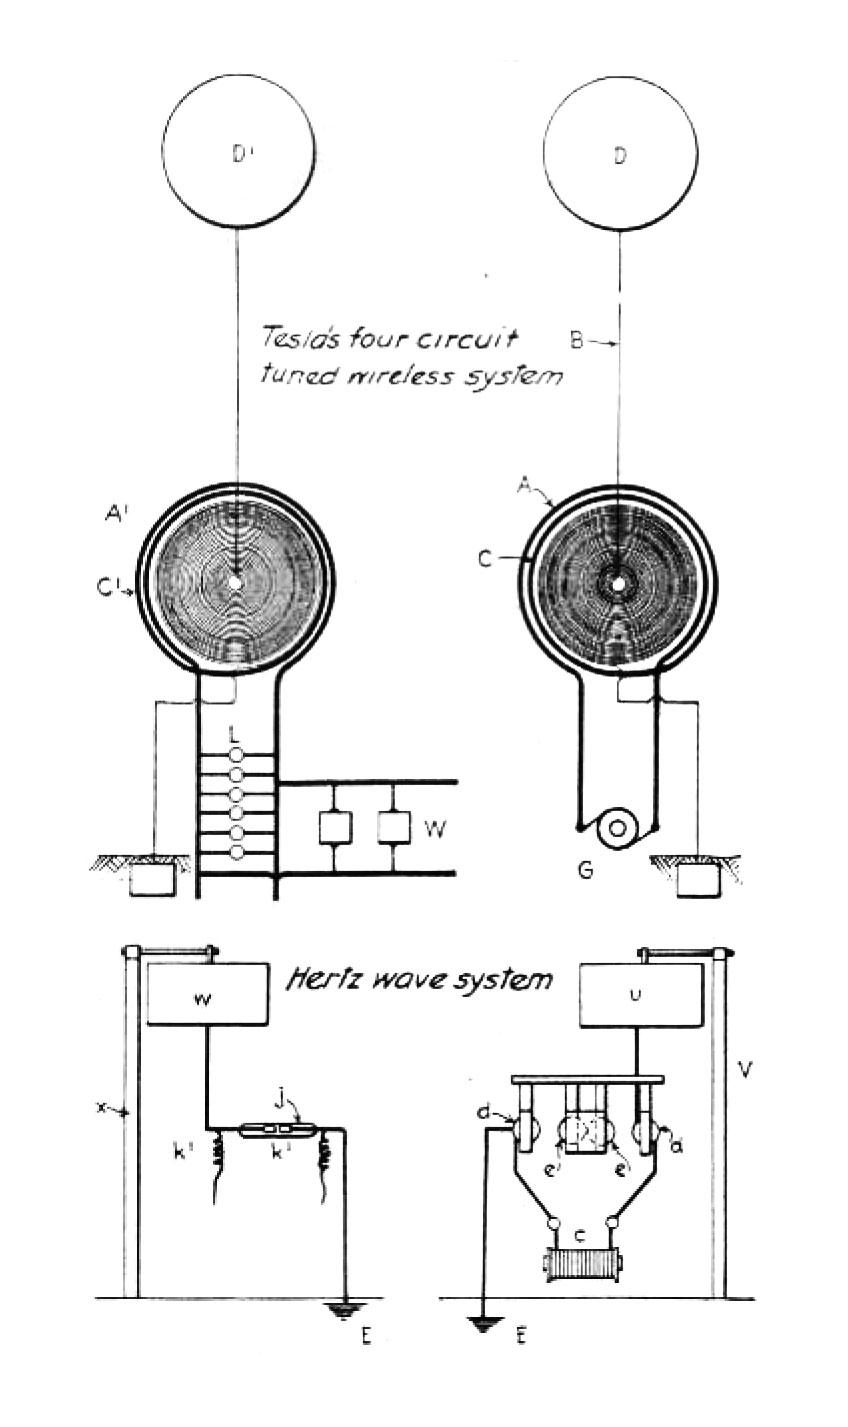 hight resolution of diagram of tesla s four circuit tuned system